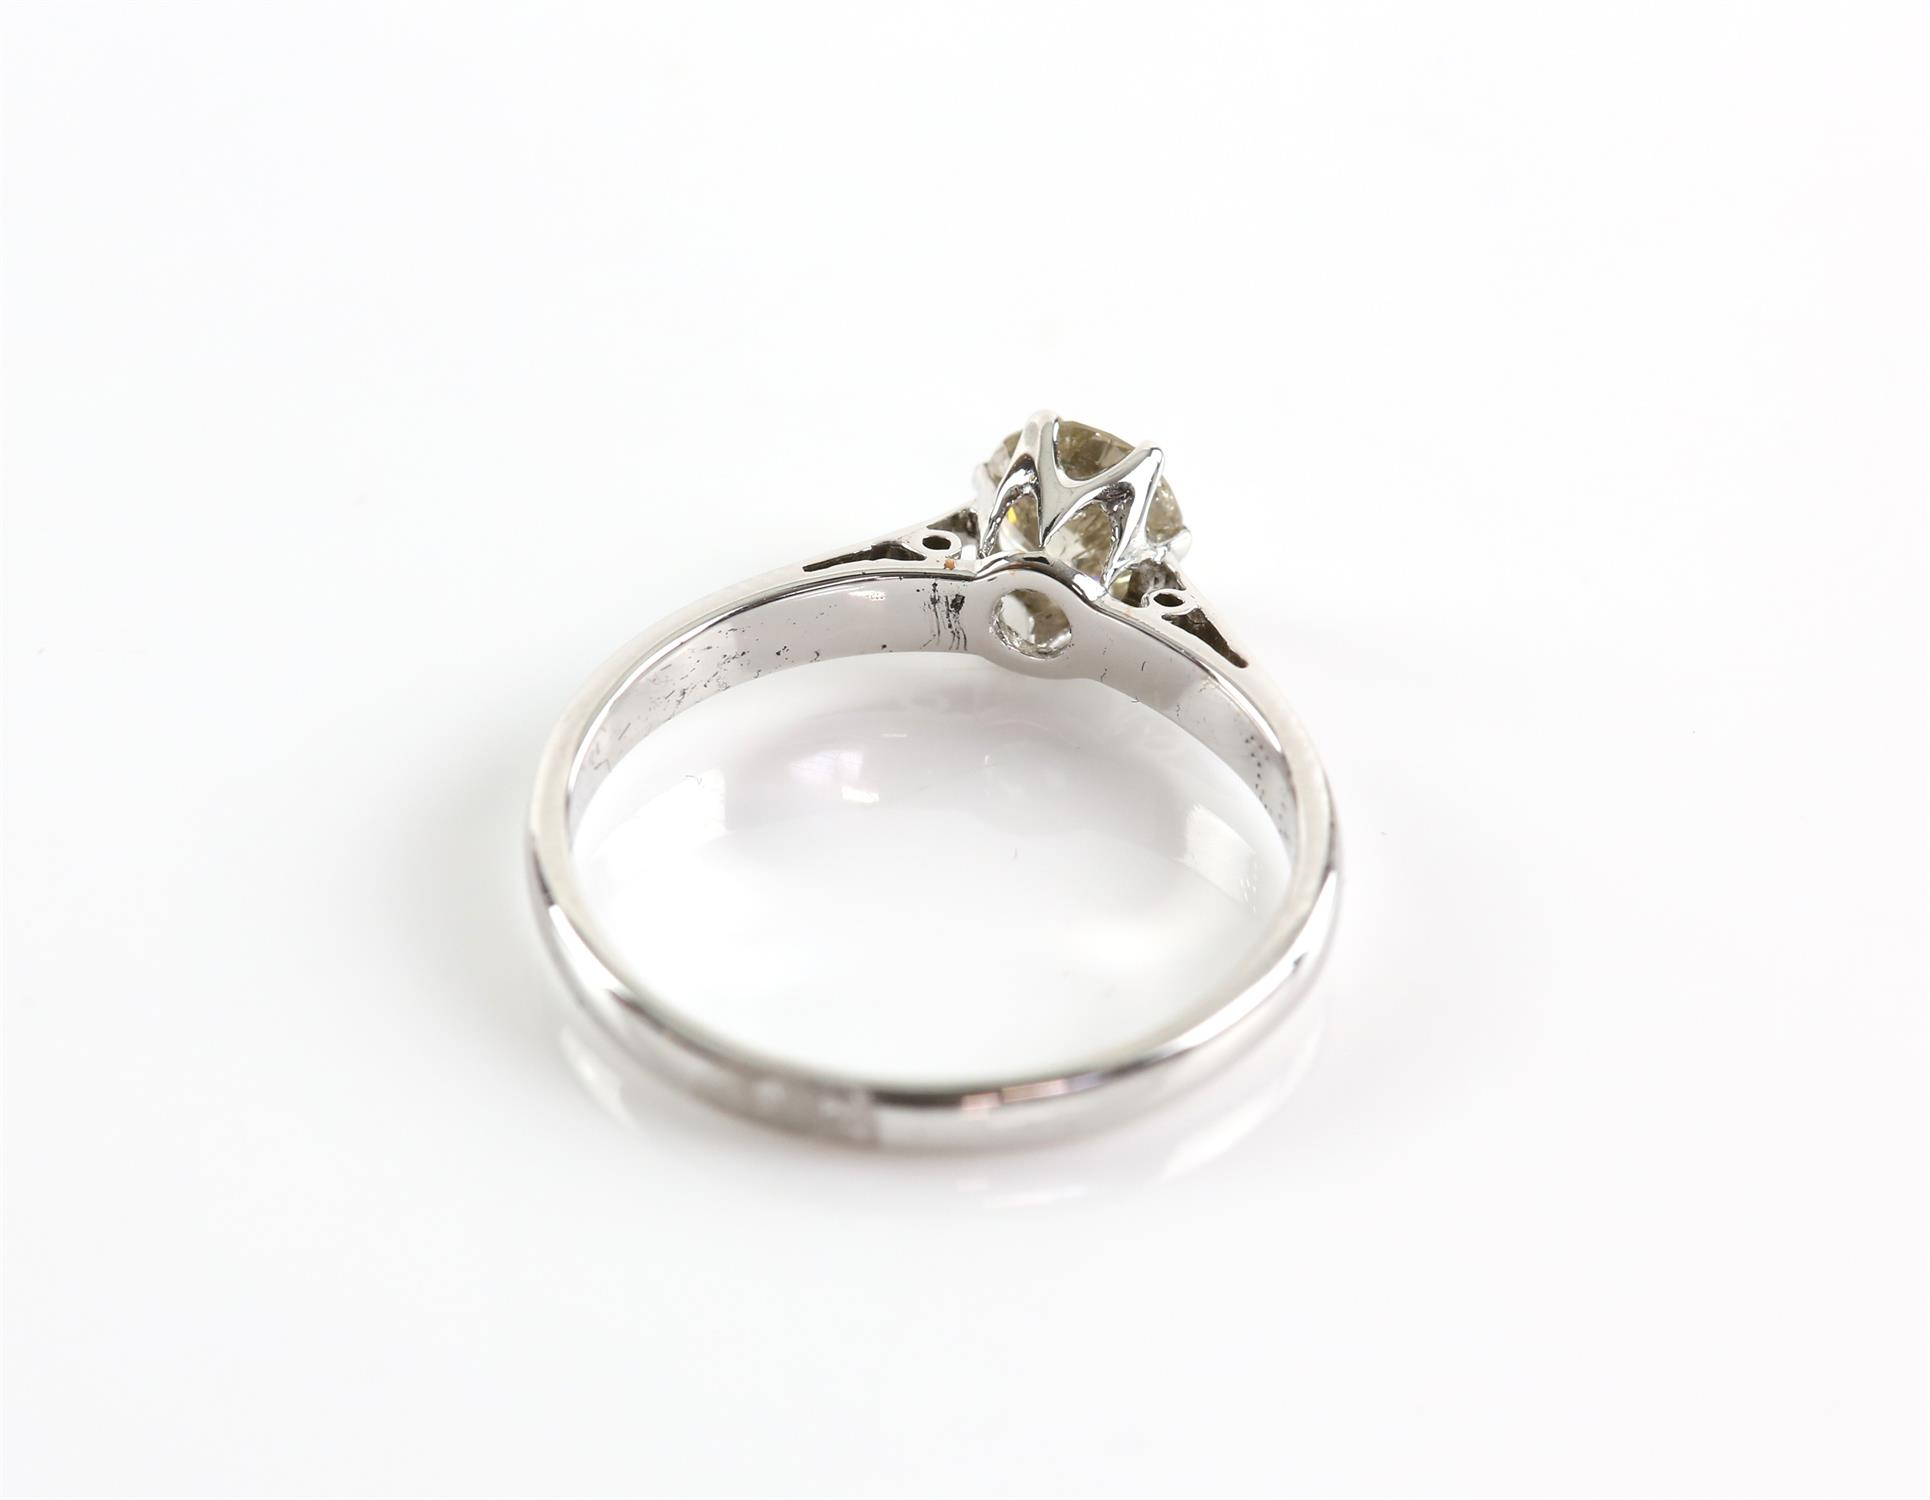 Diamond single stone ring, round brilliant cut diamond weighing an estimated 0.68 carats, claw set, - Image 3 of 3